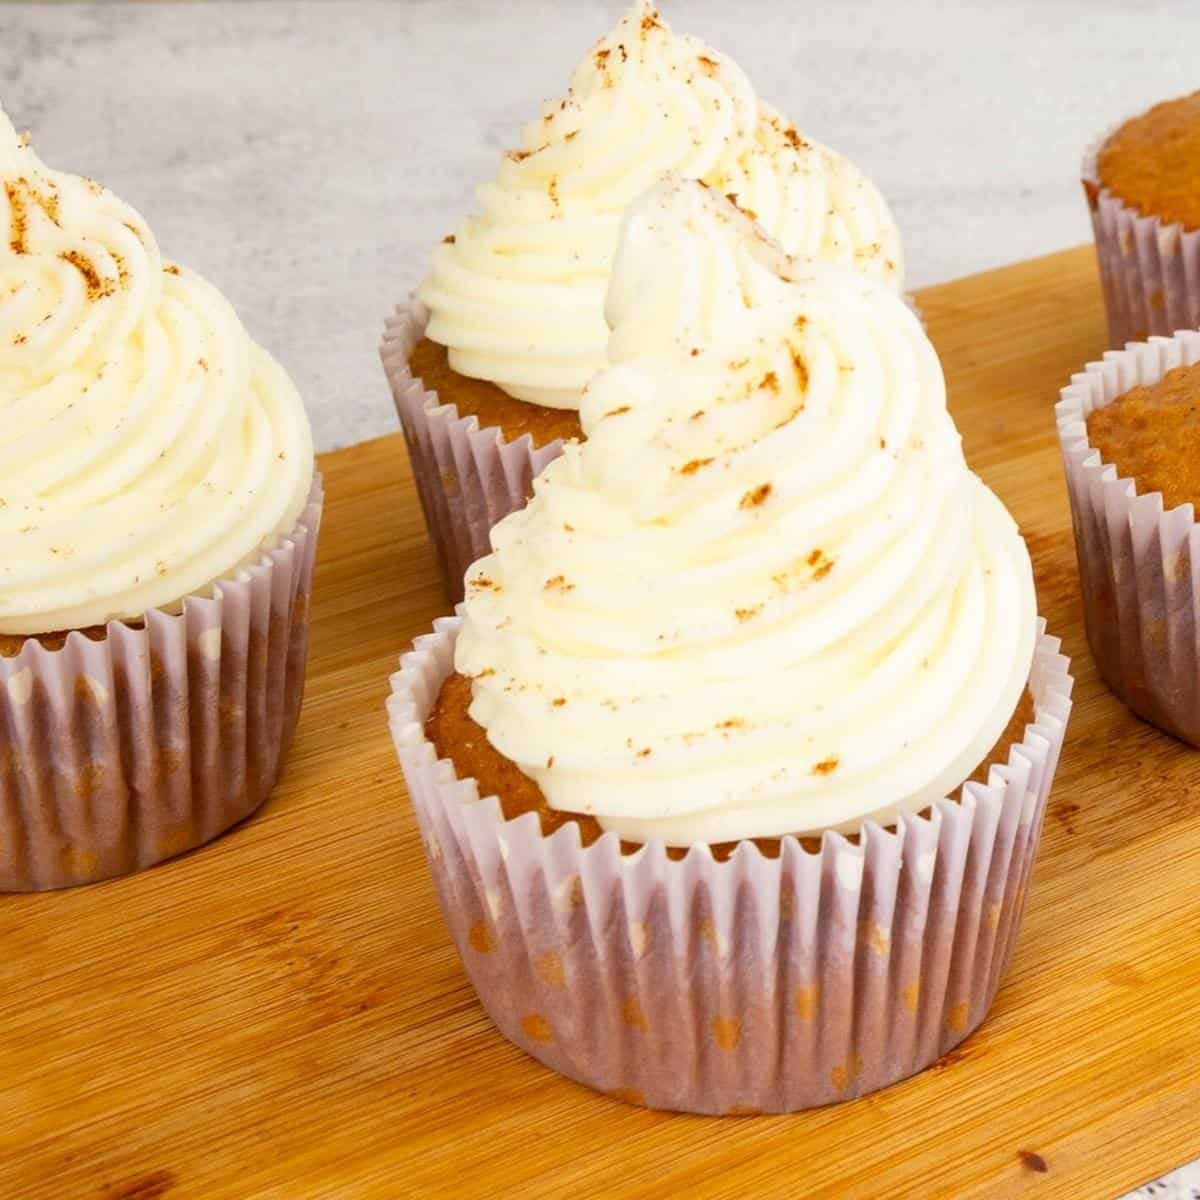 Honey cupcakes frosted with honey buttercream.